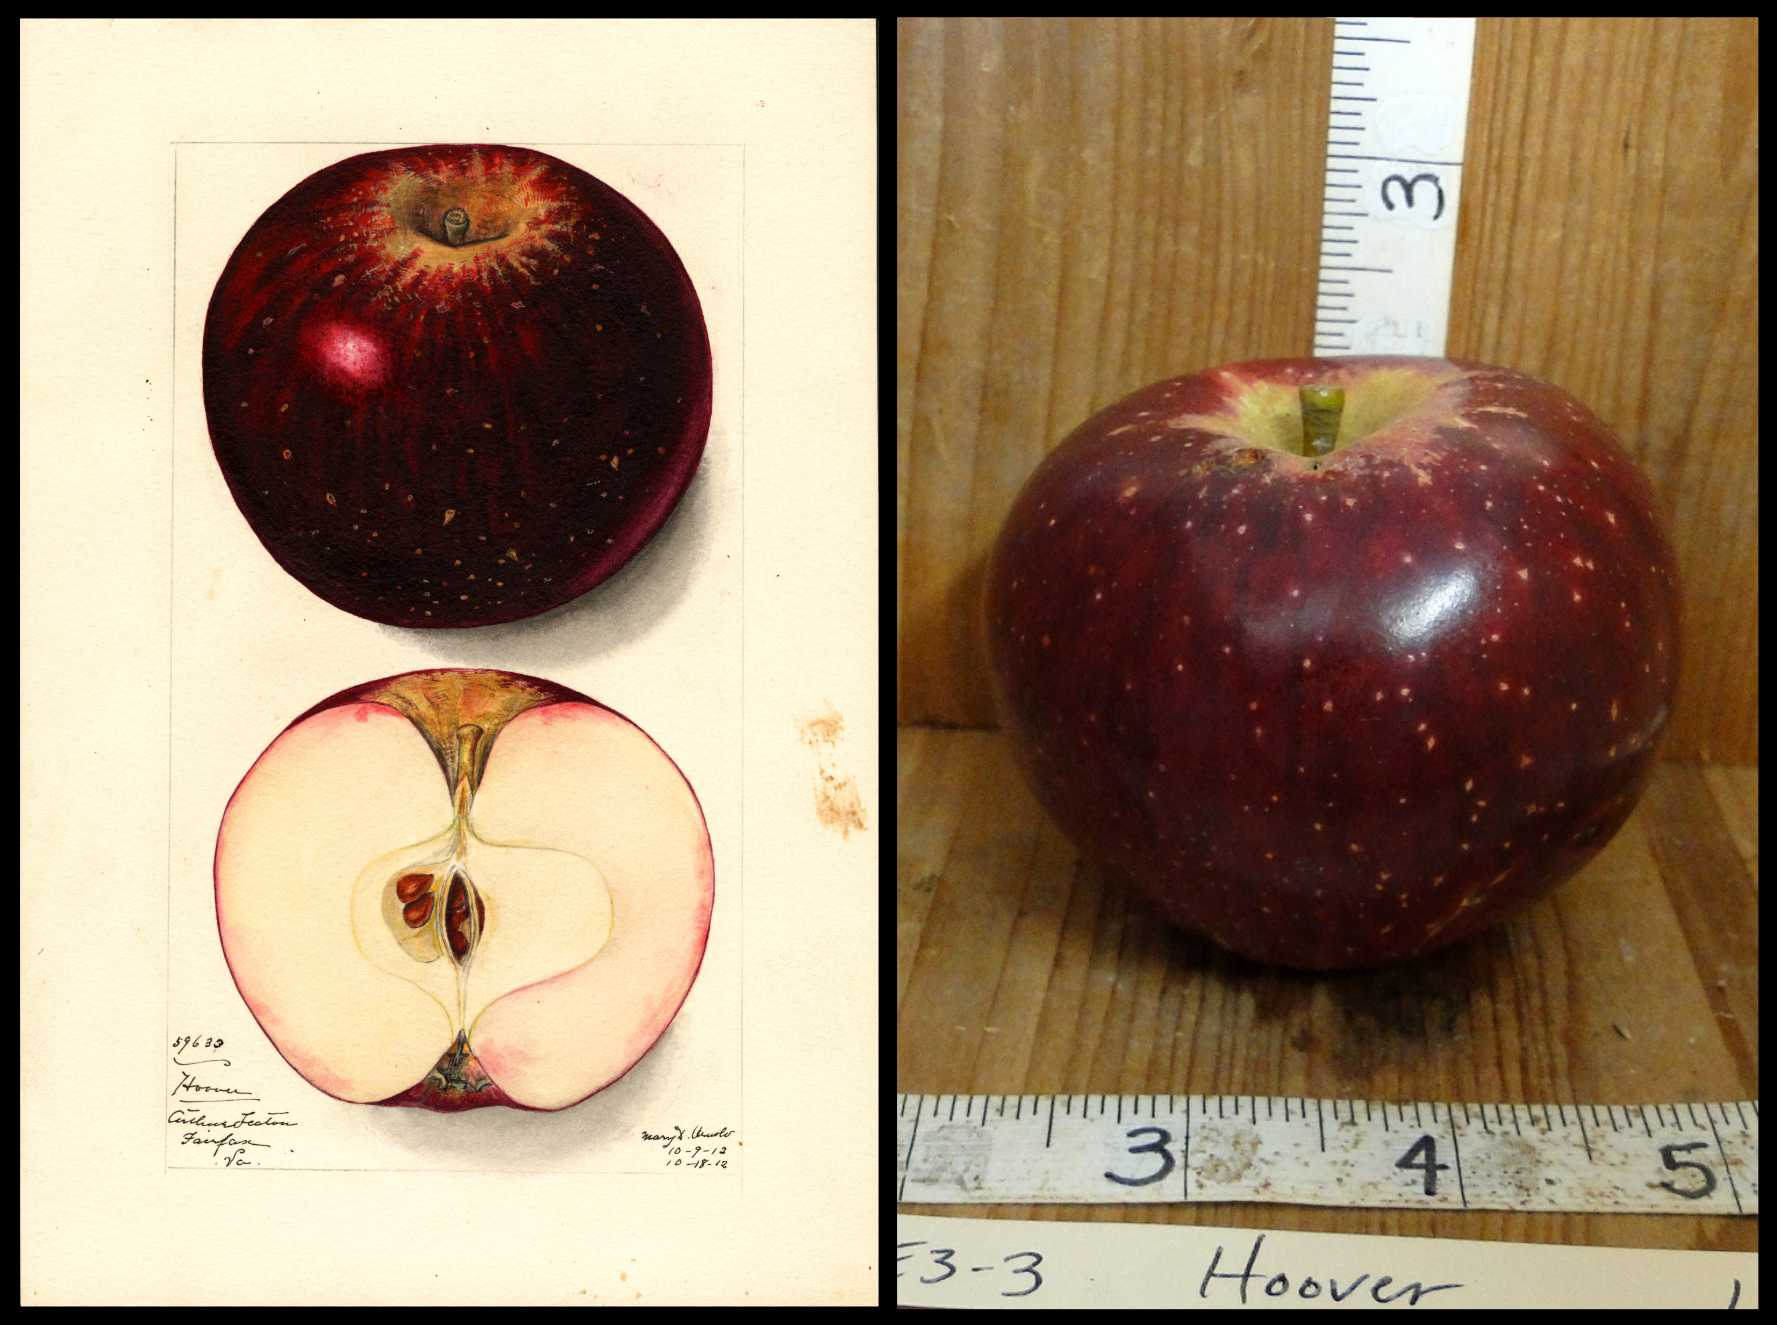 dark red apple with almost black stripes and small white spots